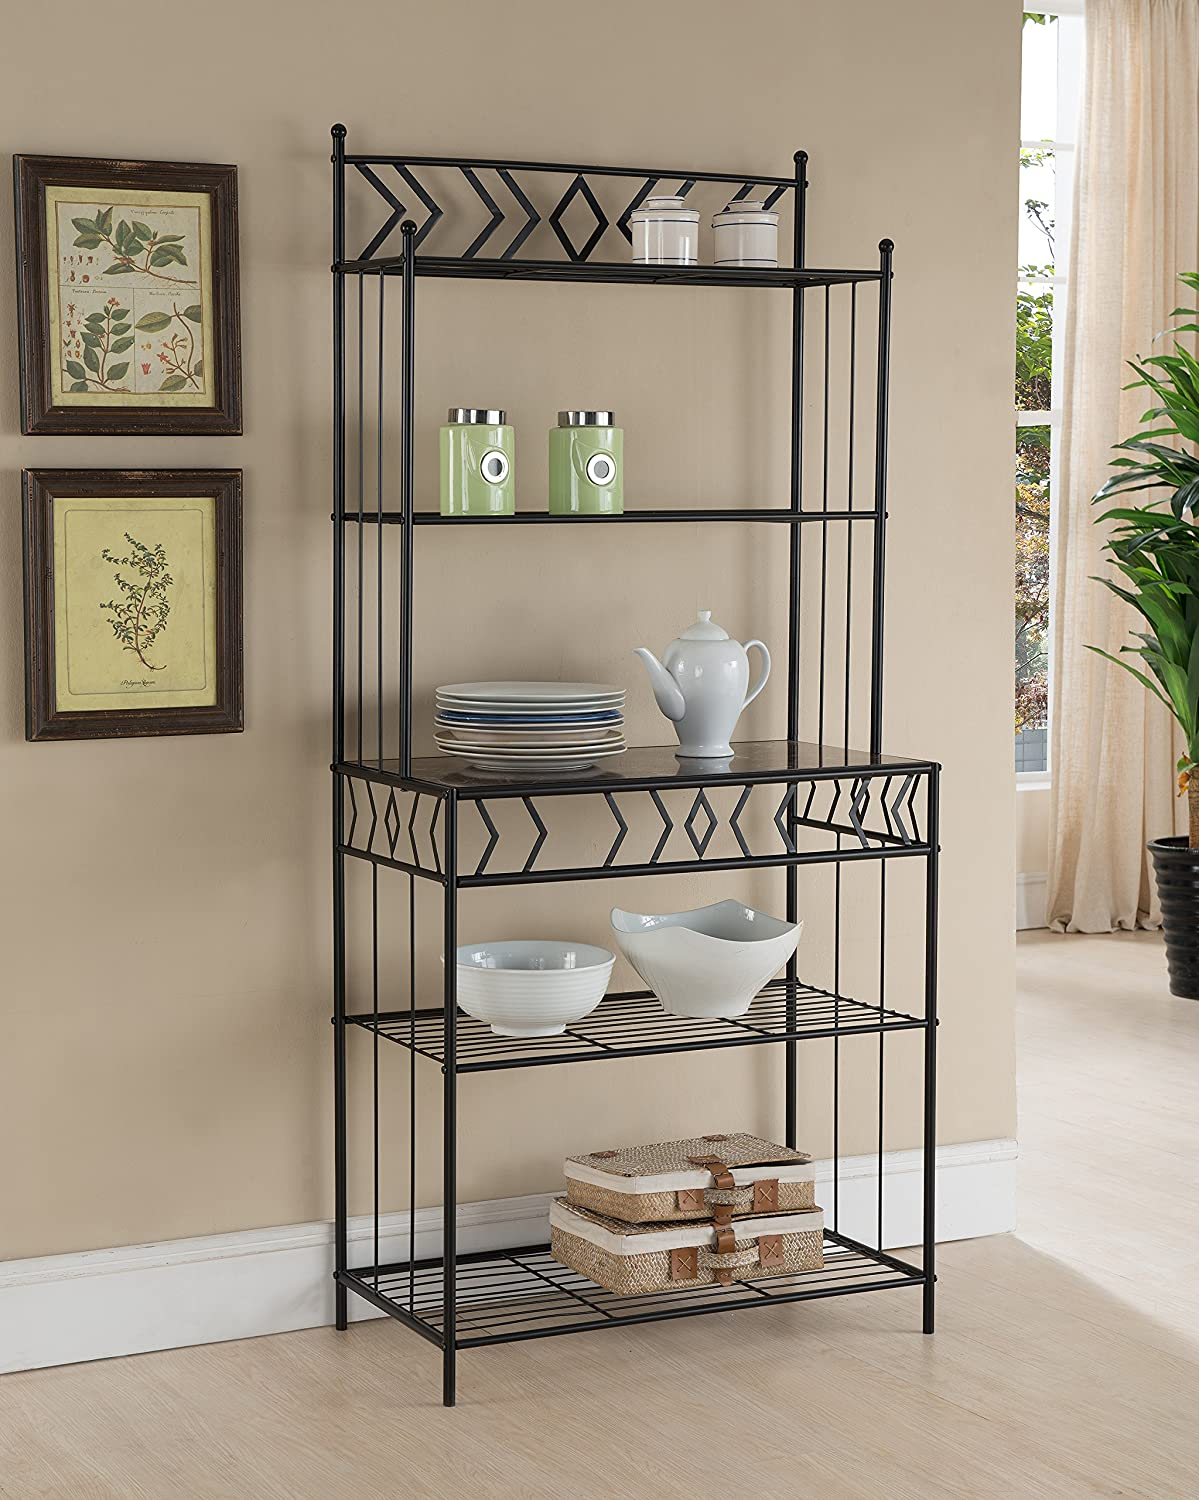 Kings Brand Furniture Metal with Marble Finish 5-Tier Bakers Rack, Black